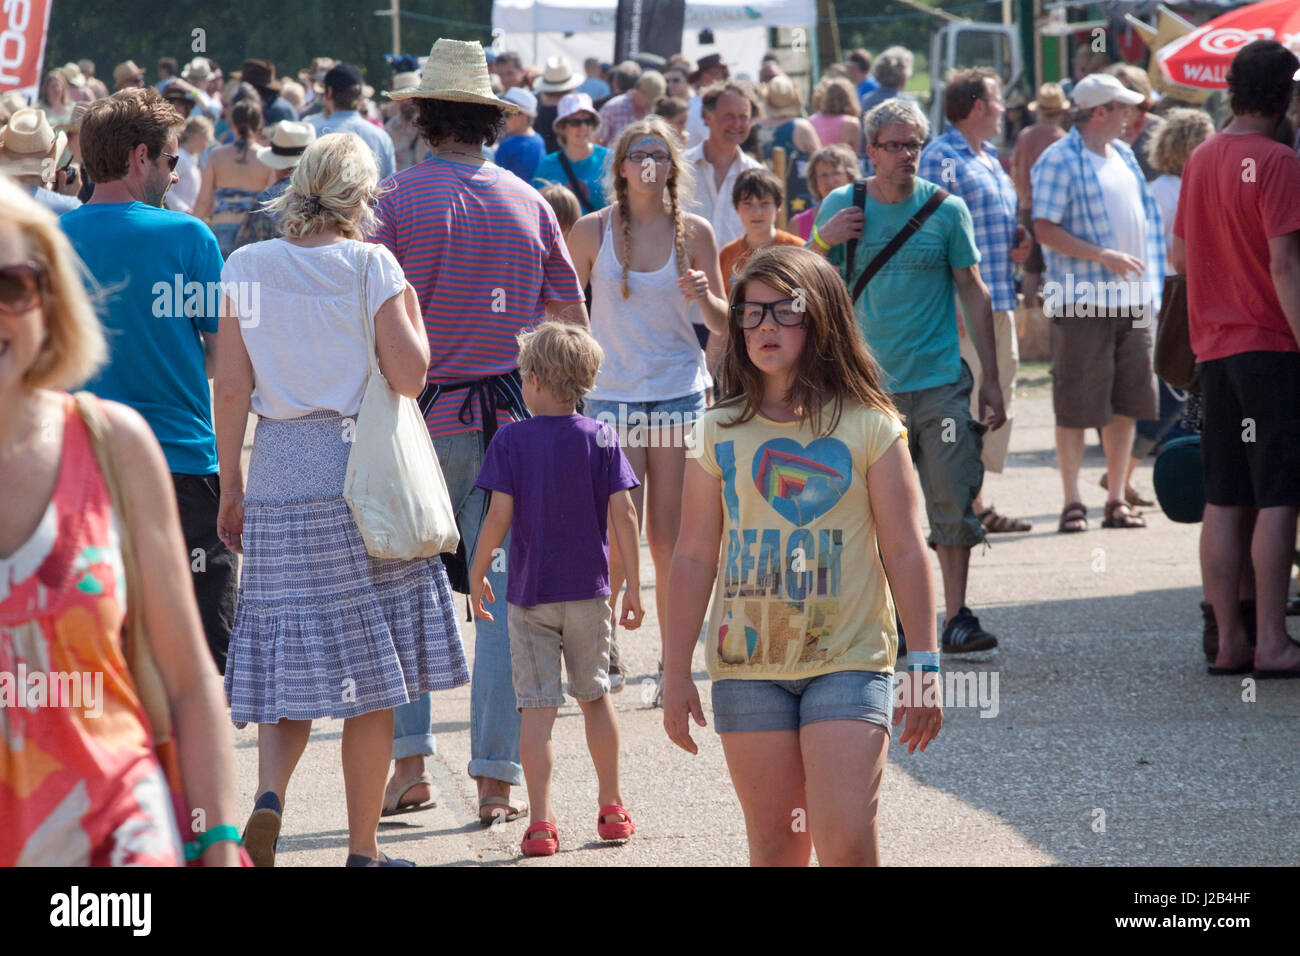 Crowds in the sun at the Maverick music festival - Stock Image